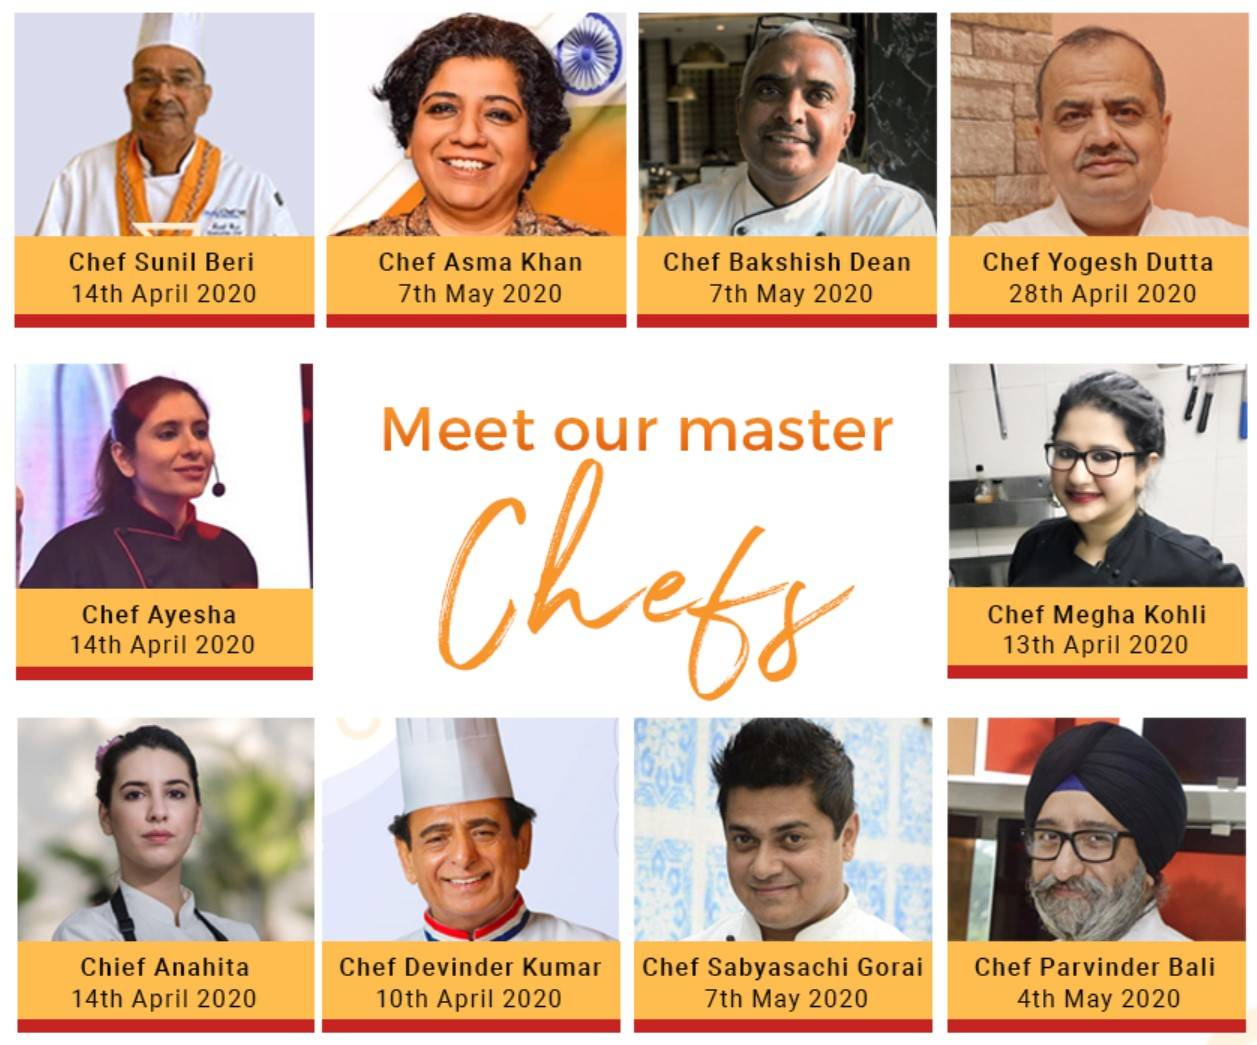 These are the Chefs Who have already taken Master Classes at IICA